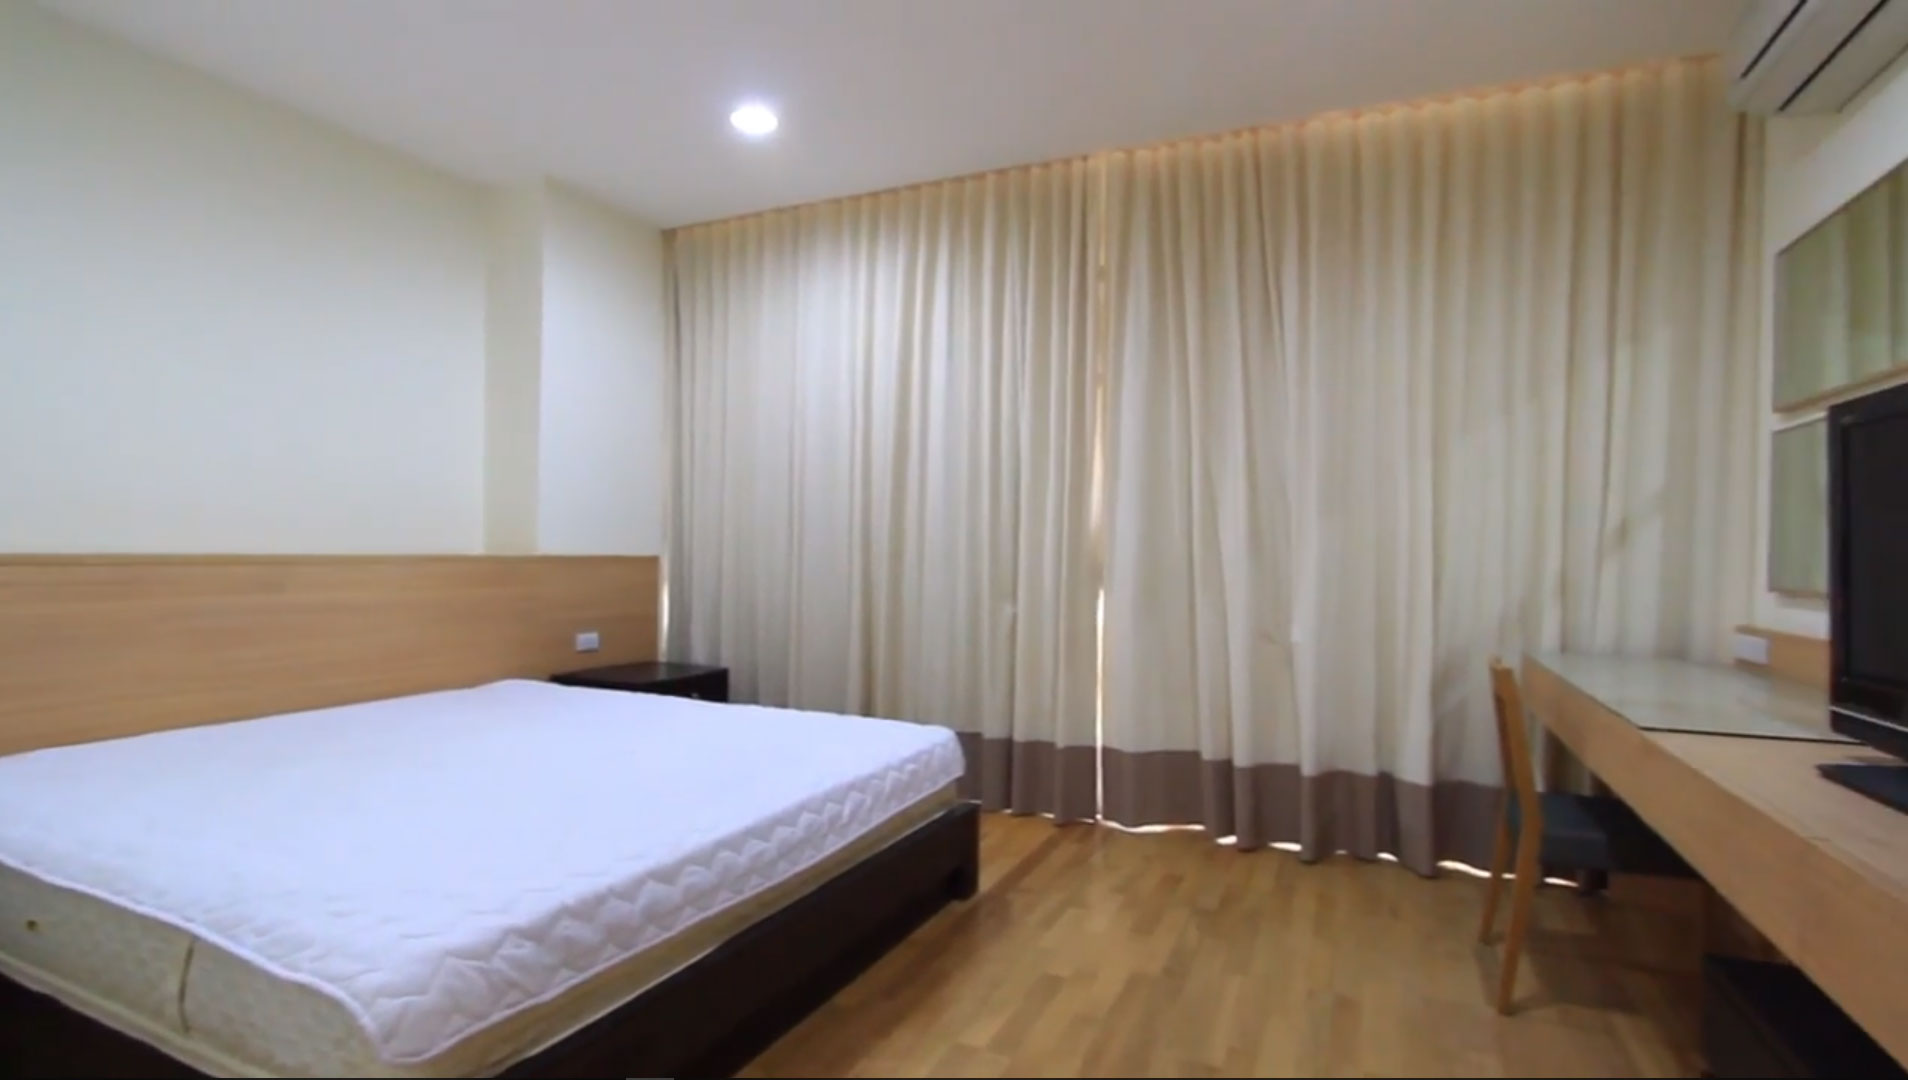 2 Bedroom Greenery Place Sukhumvit Soi 61 Apartments For Rent